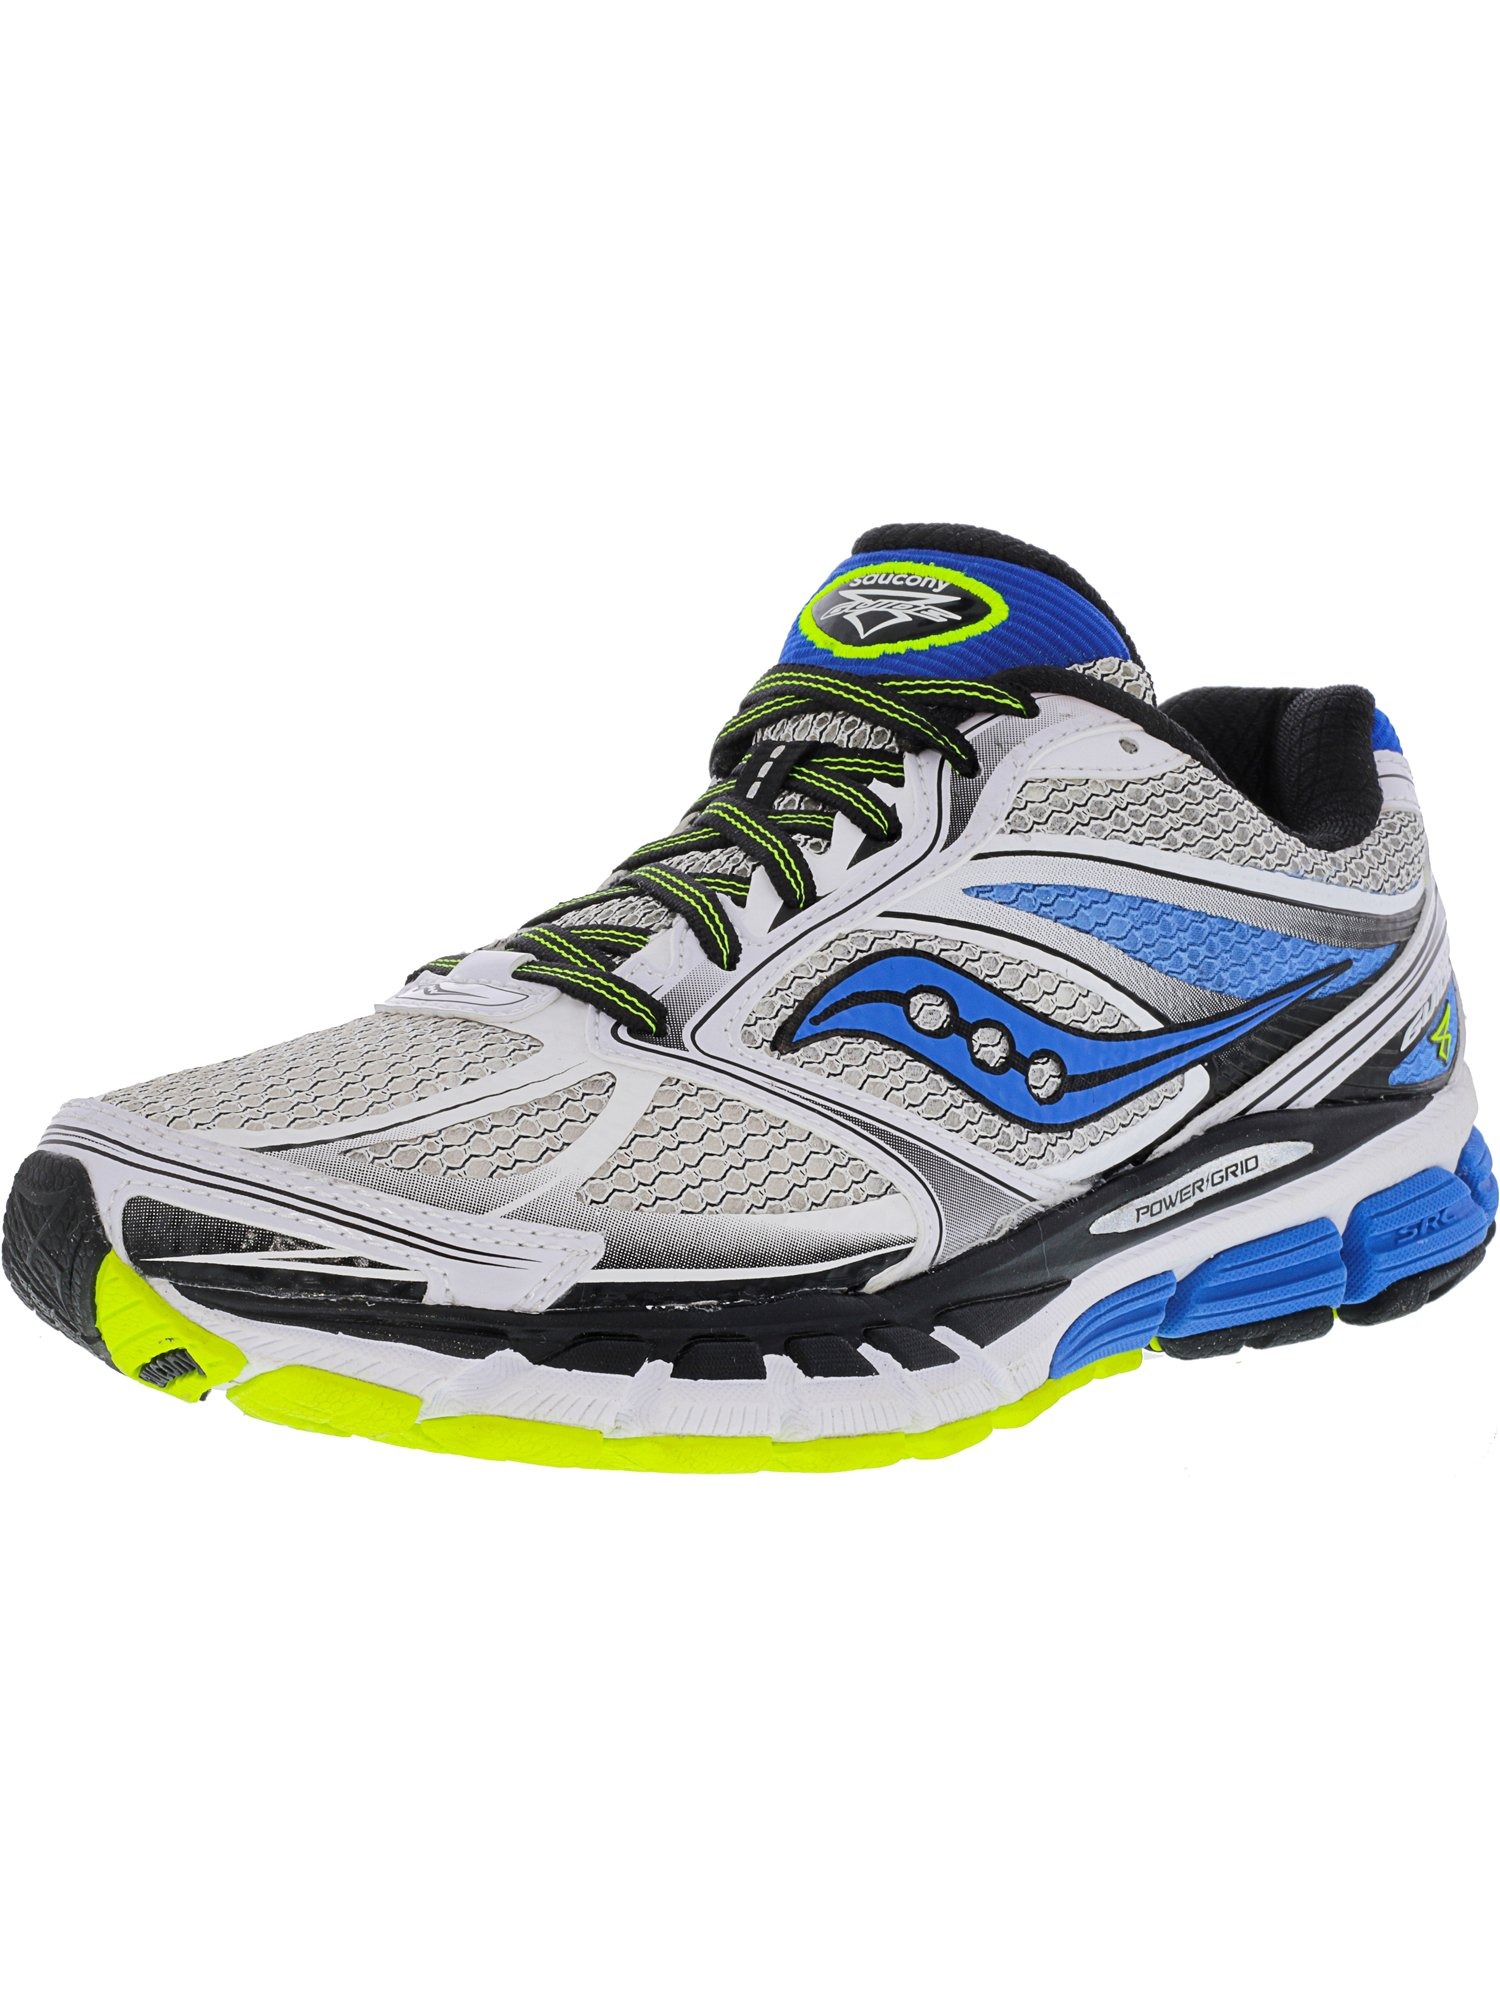 Saucony Men's Guide 8 White Blue Citron Ankle-High Running Shoe 7.5M by Saucony